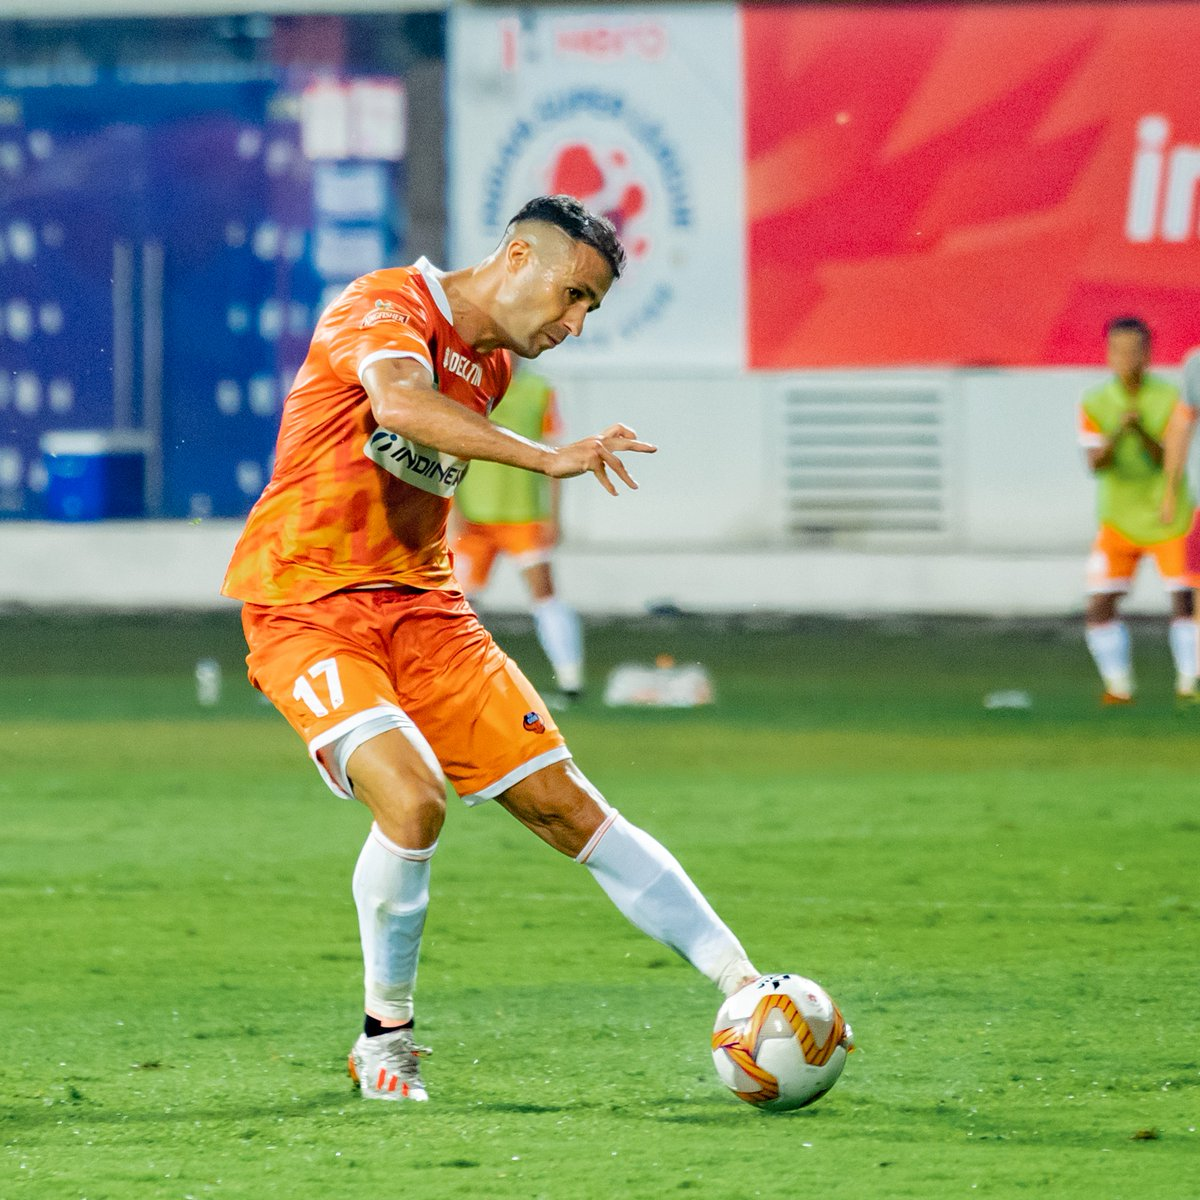 The Gaurs have undergone a significant change in their attacking personnel that have played the @IndSuperLeague in the last few years.   Here's @KhelNow analysing the potential of the club's forward line this season. 🙌🏻  Read more:   #RiseAgain